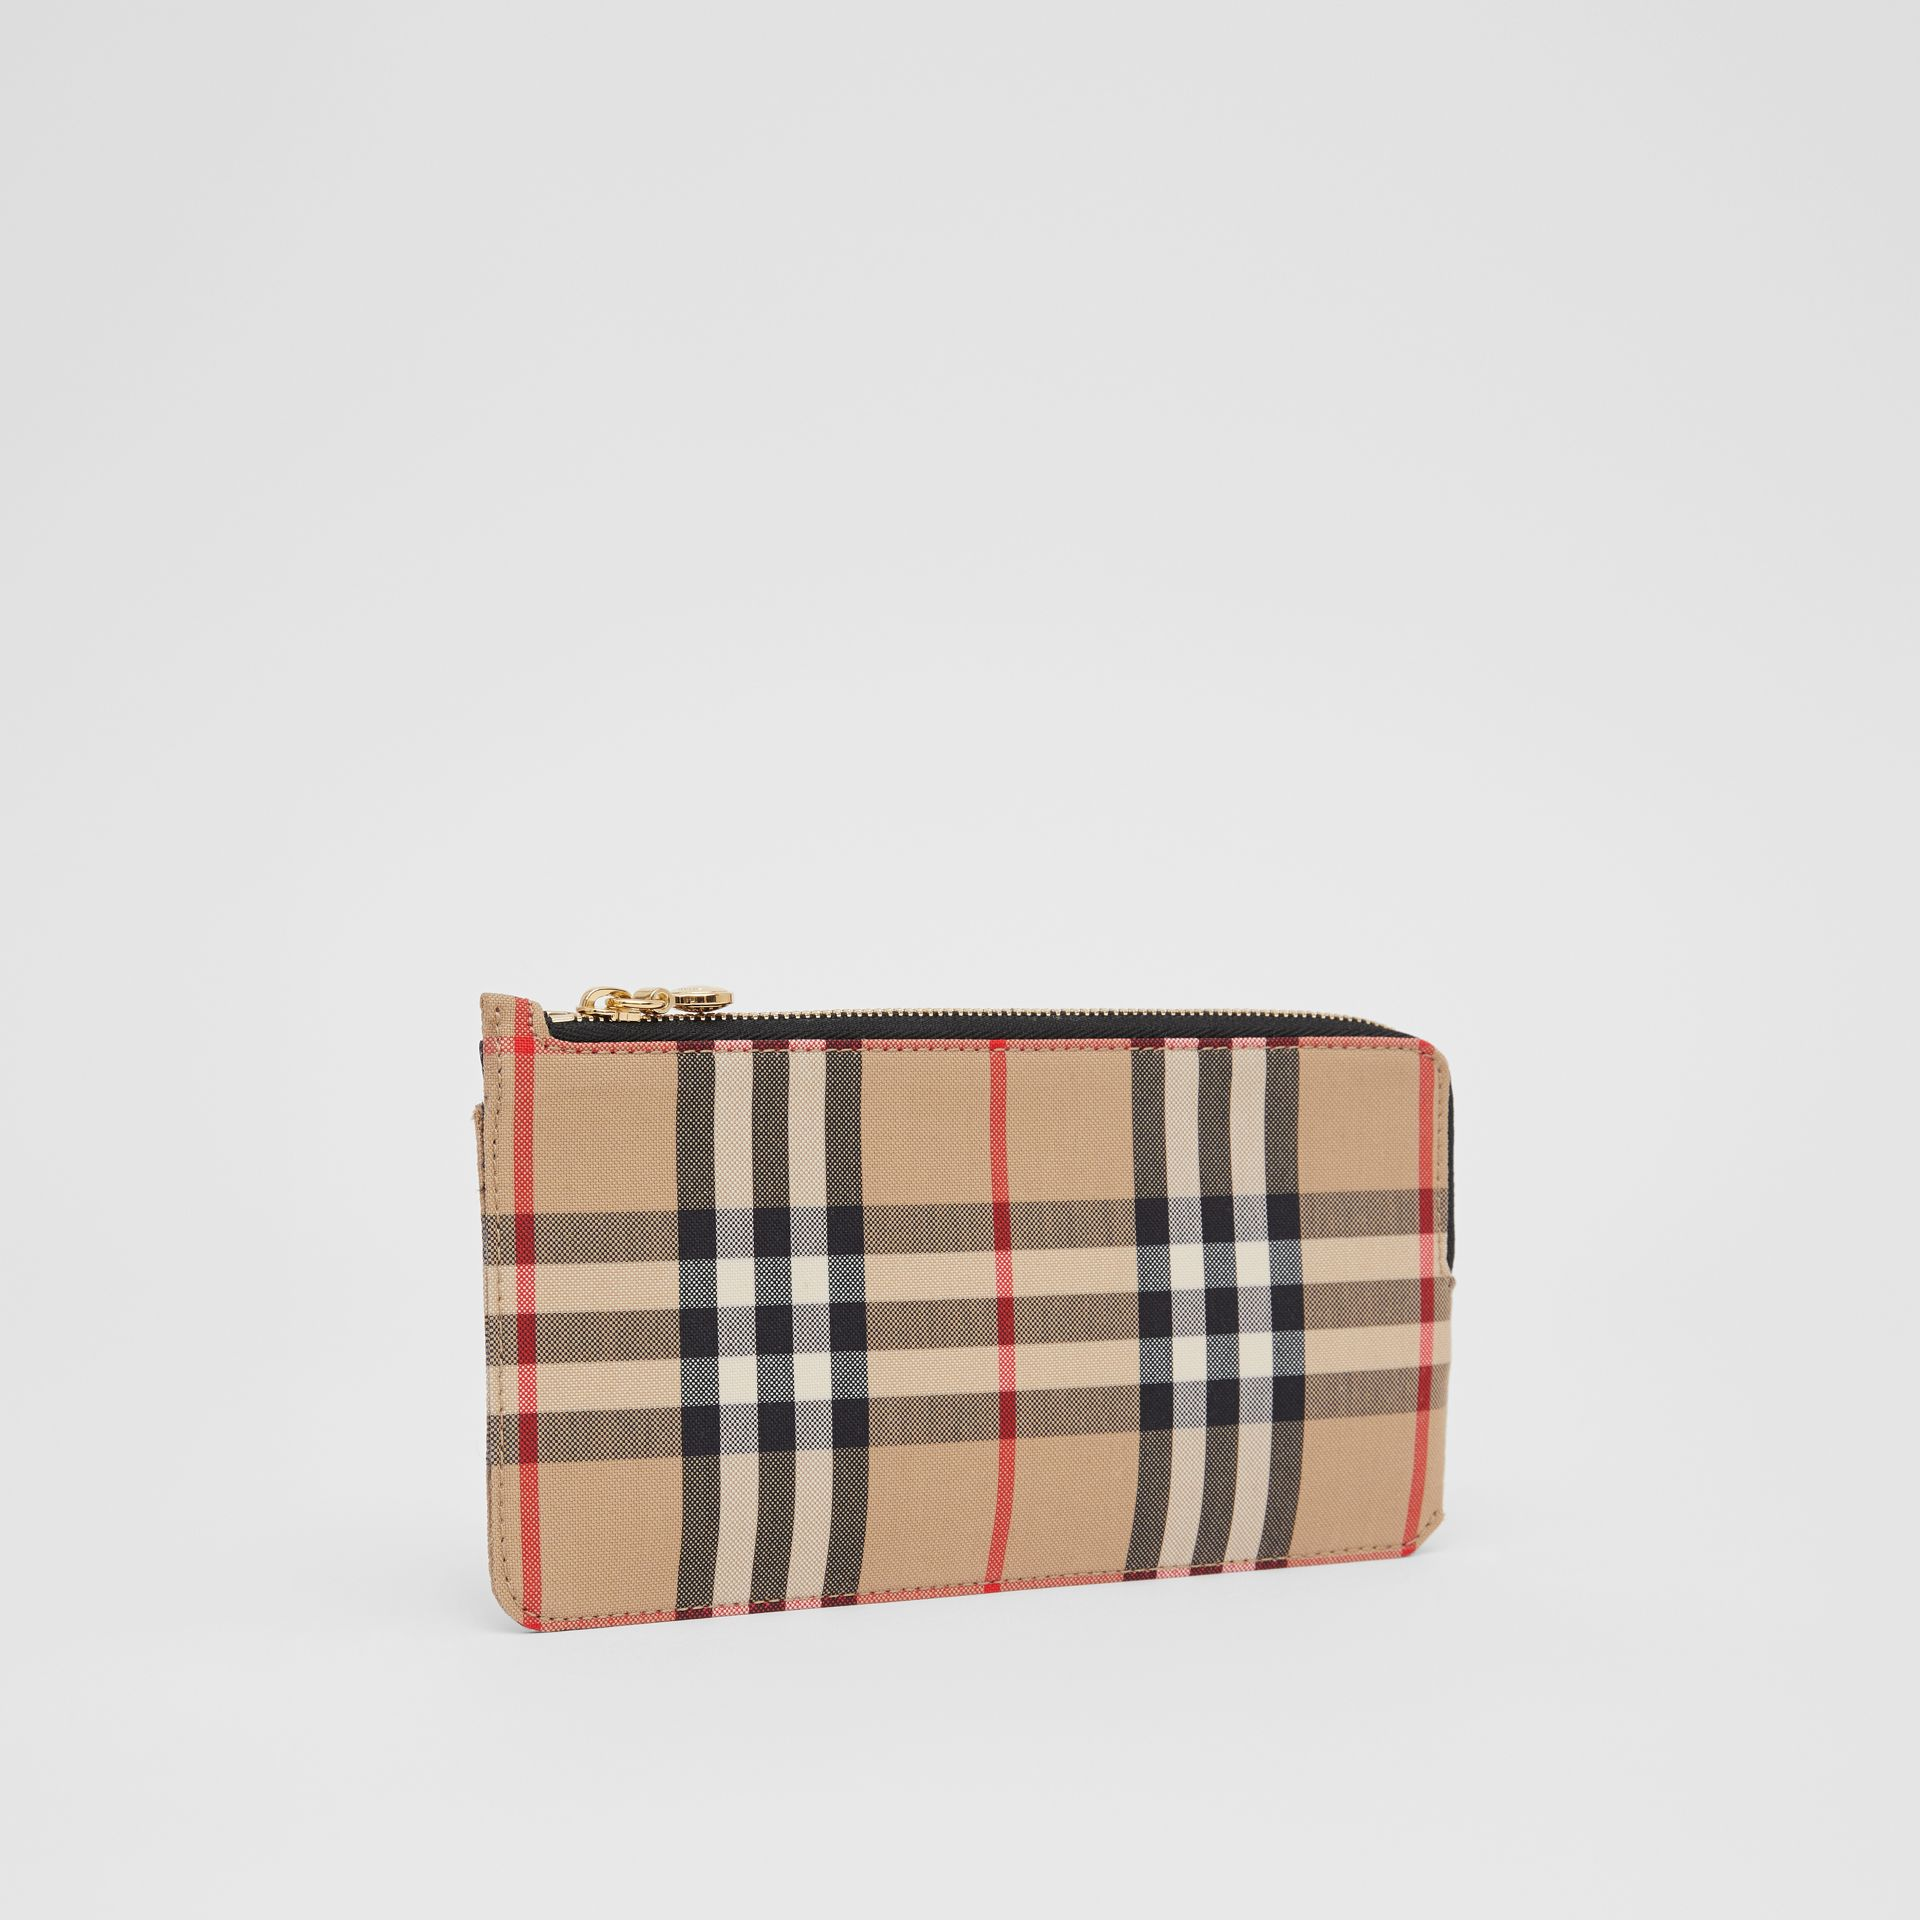 Vintage Check and Leather Phone Wallet in Black - Women | Burberry - gallery image 3